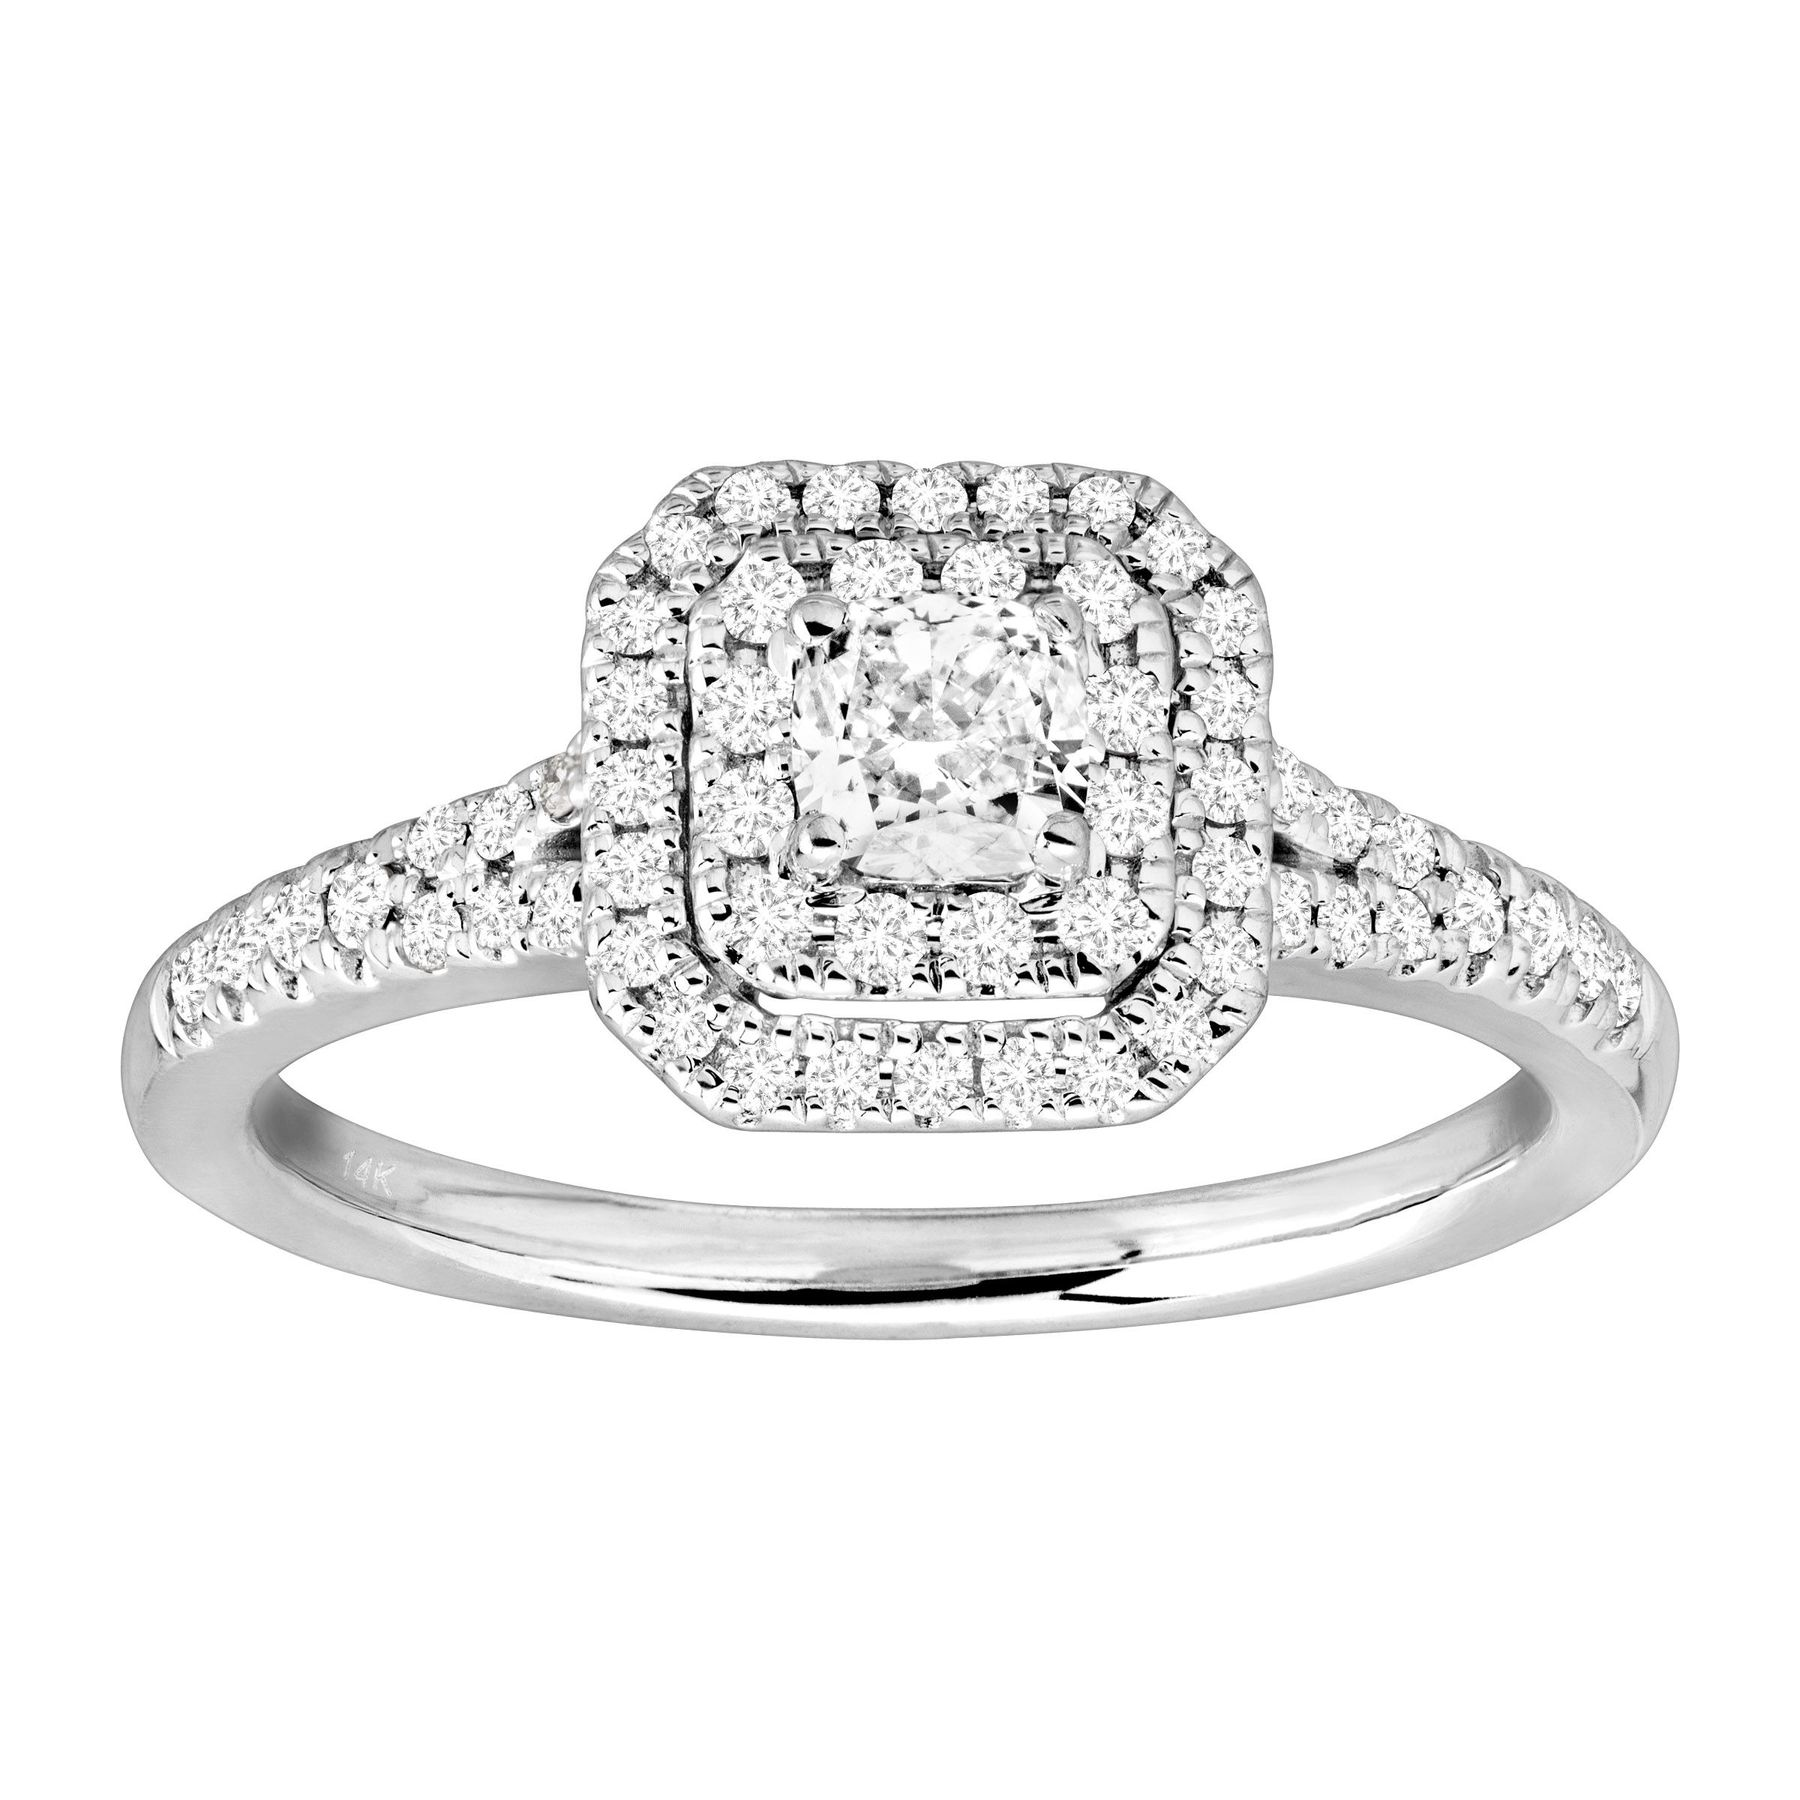 75843f7fa6d 5/8 ct Diamond Engagement Ring in Rhodium-Plated 14K White Gold | 5 ...